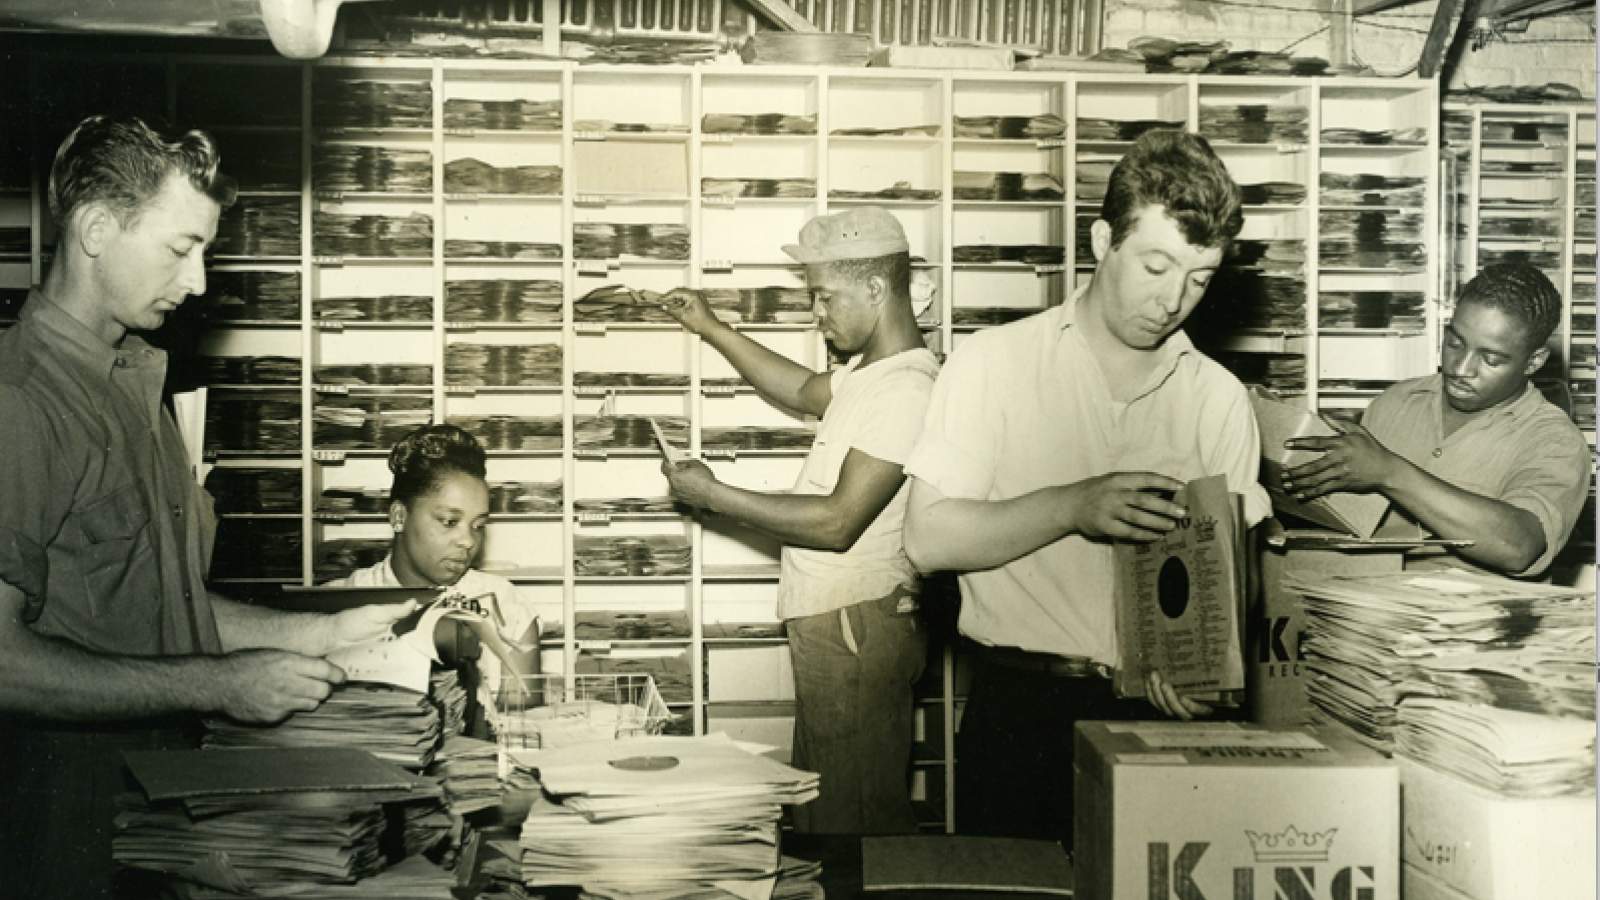 Five King Records employees sorting records